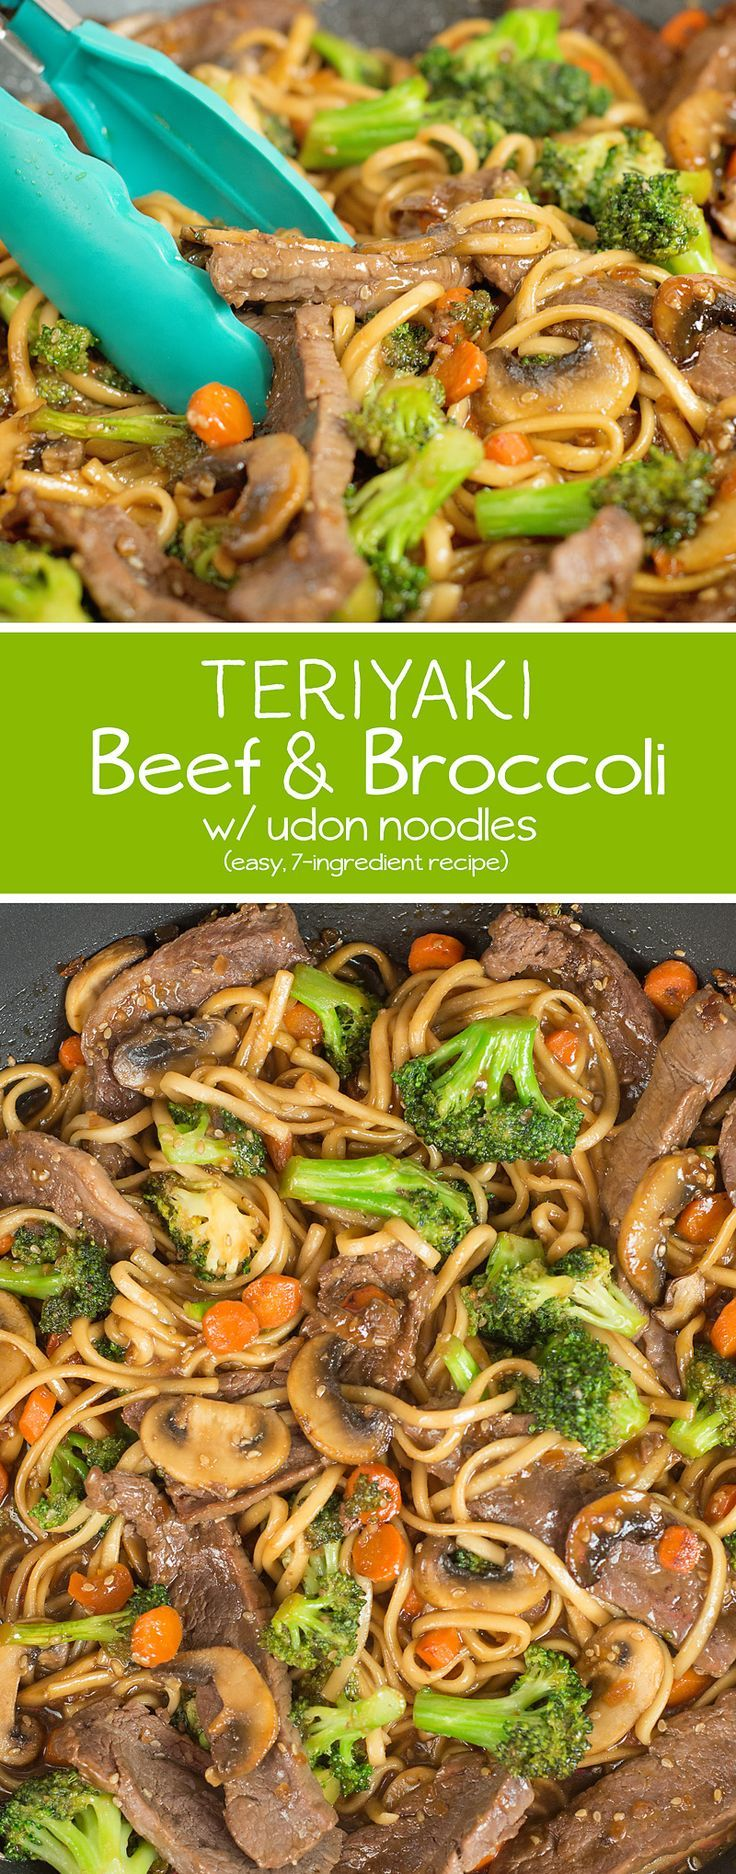 This Teriyaki Beef and Broccoli recipe is easy to make and perfect for busy nights!  With only a few ingredients, you can have this delicious dinner on the table in about 25 minutes!